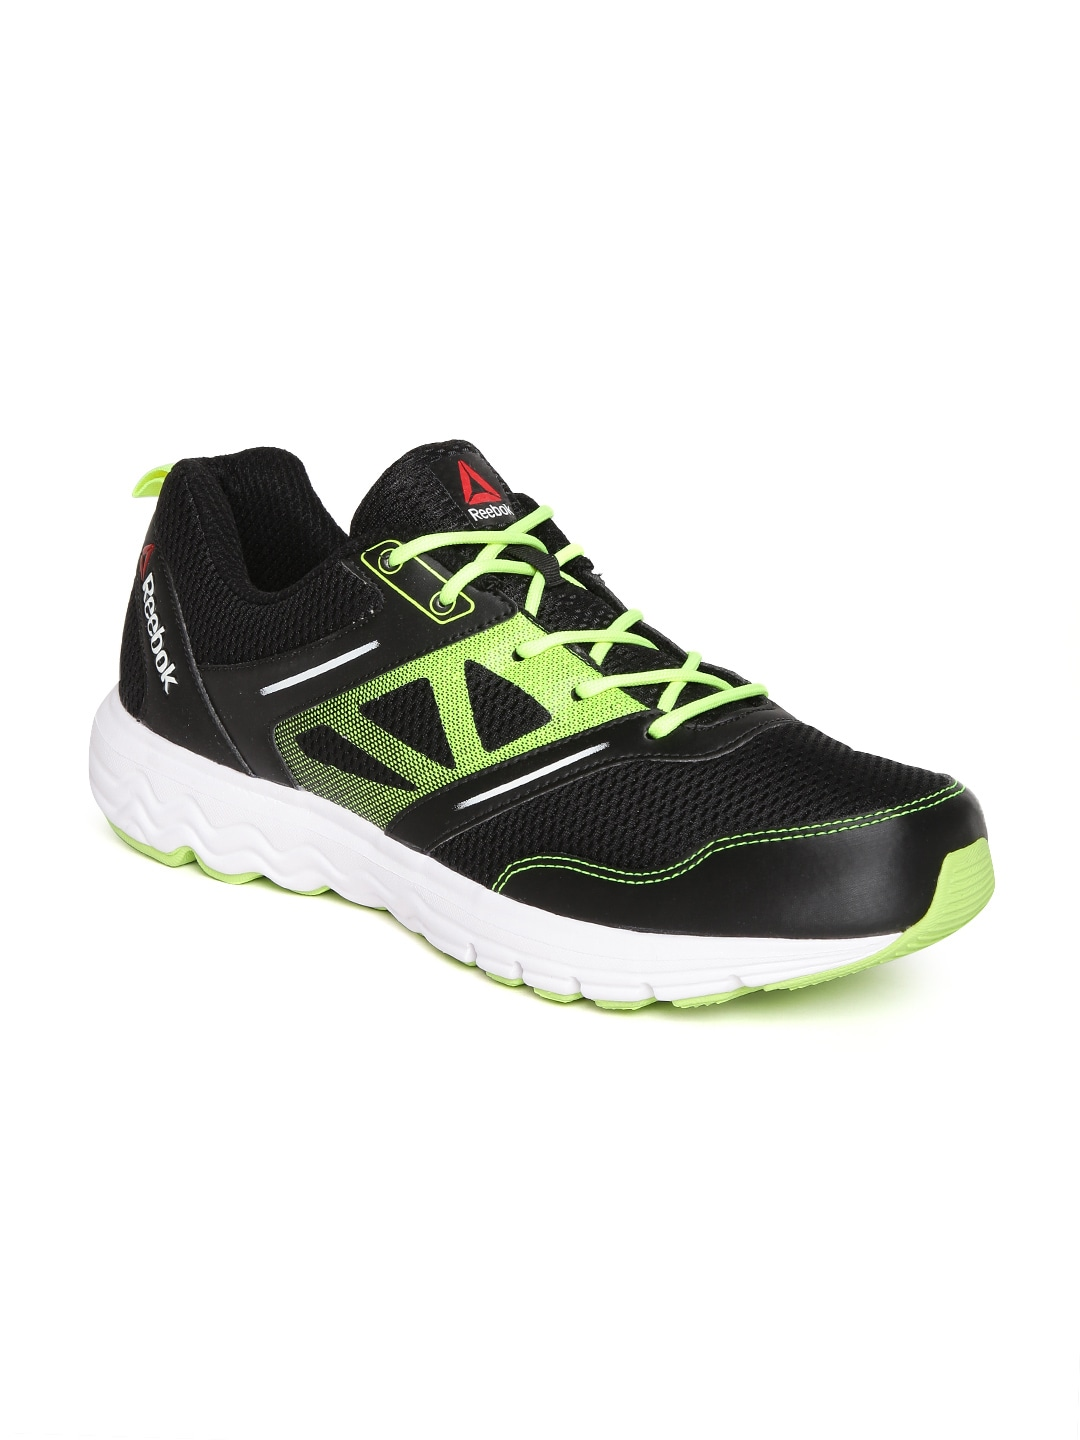 1cef4136bac7aa Reebok Shoes - Buy Reebok Shoes For Men   Women Online